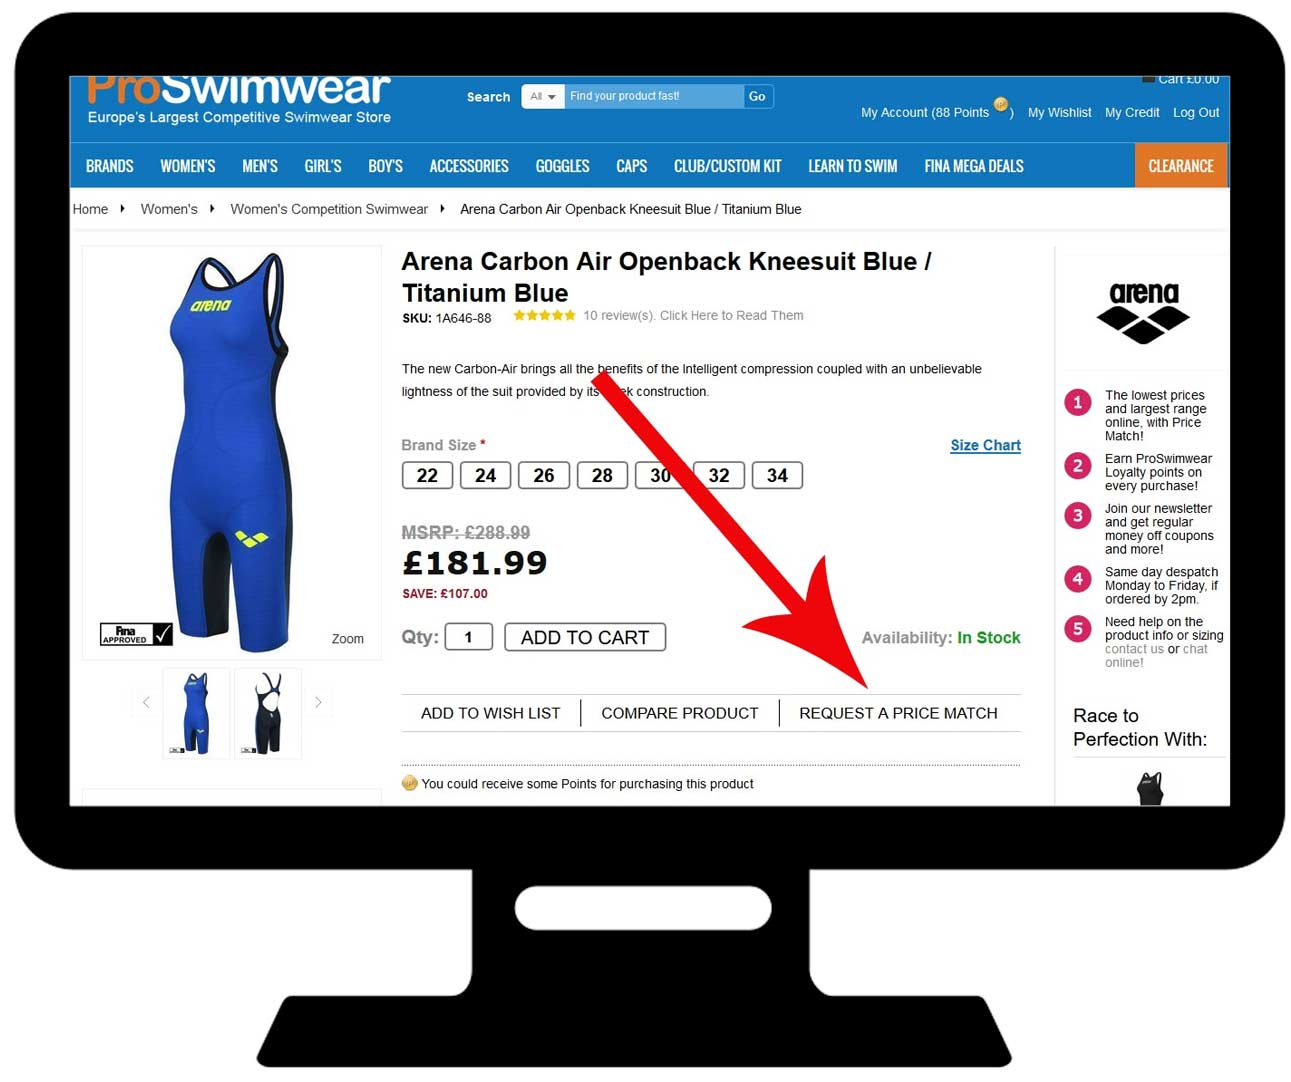 Price Match on Product Page